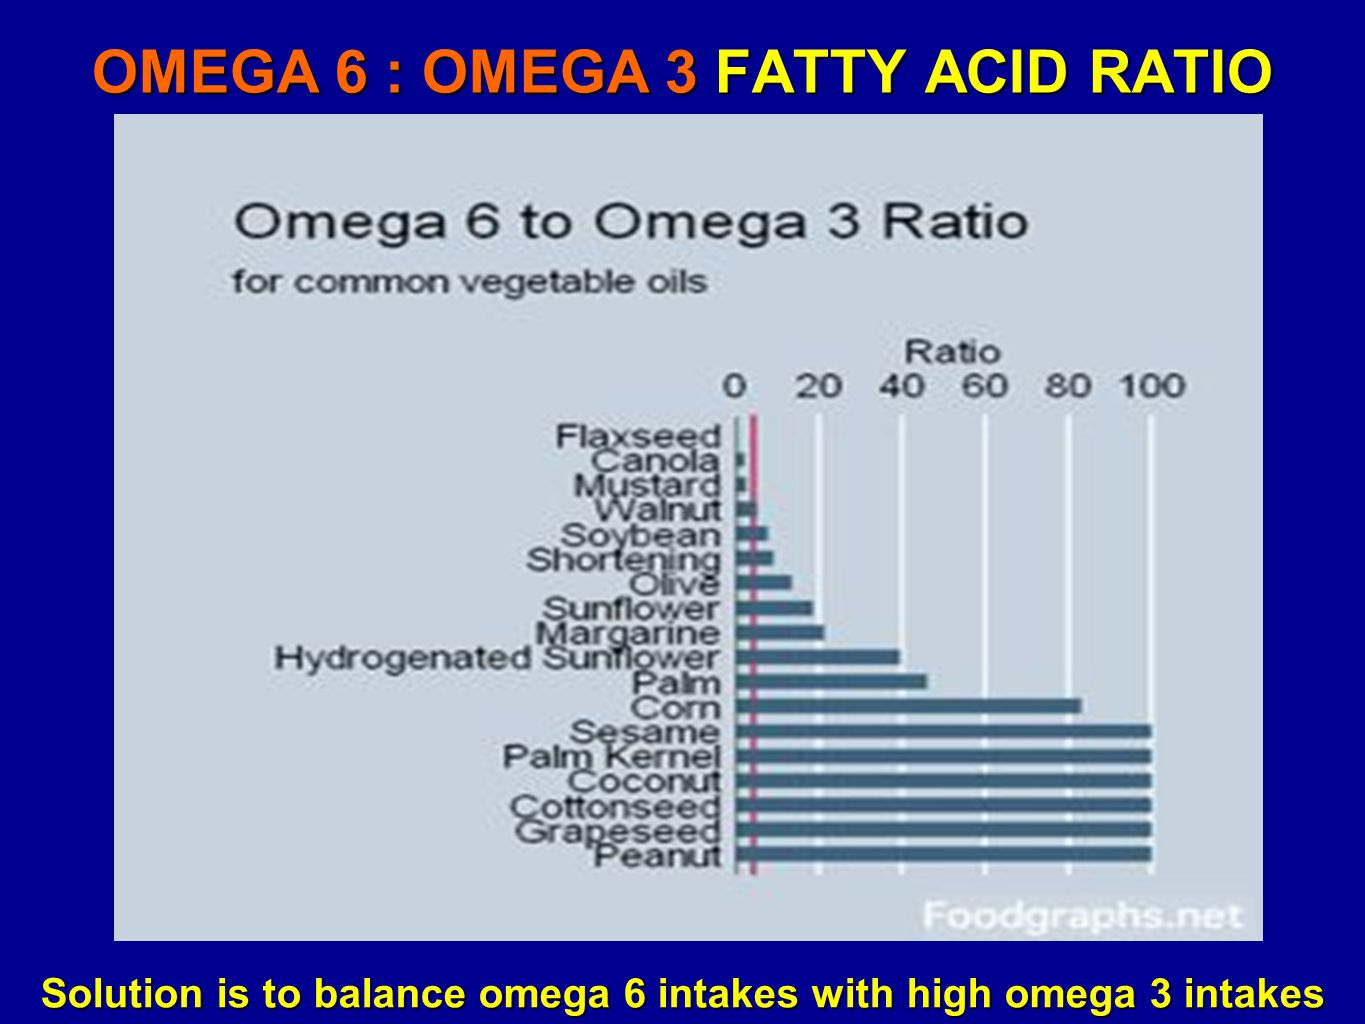 OMEGA 6 : OMEGA 3 FATTY ACID RATIO Solution is to balance omega 6 intakes with high omega 3 intakes